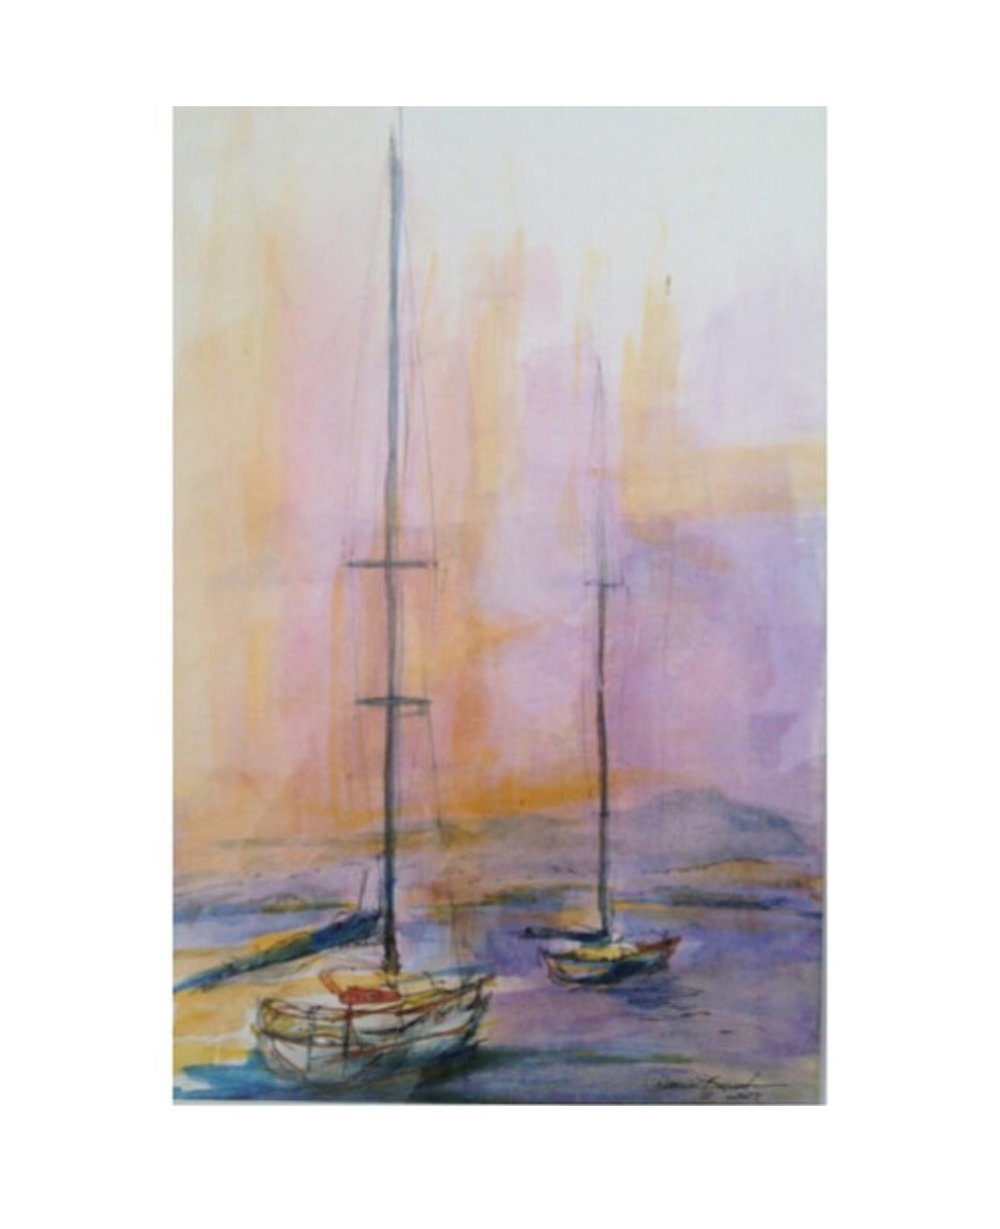 From the pier where the sailboats are docked in Santa Barbara is one of my favorite places to paint sailboats. Not only are the boats varried, the back drop of the ever so beautiful city Santa Barbara.